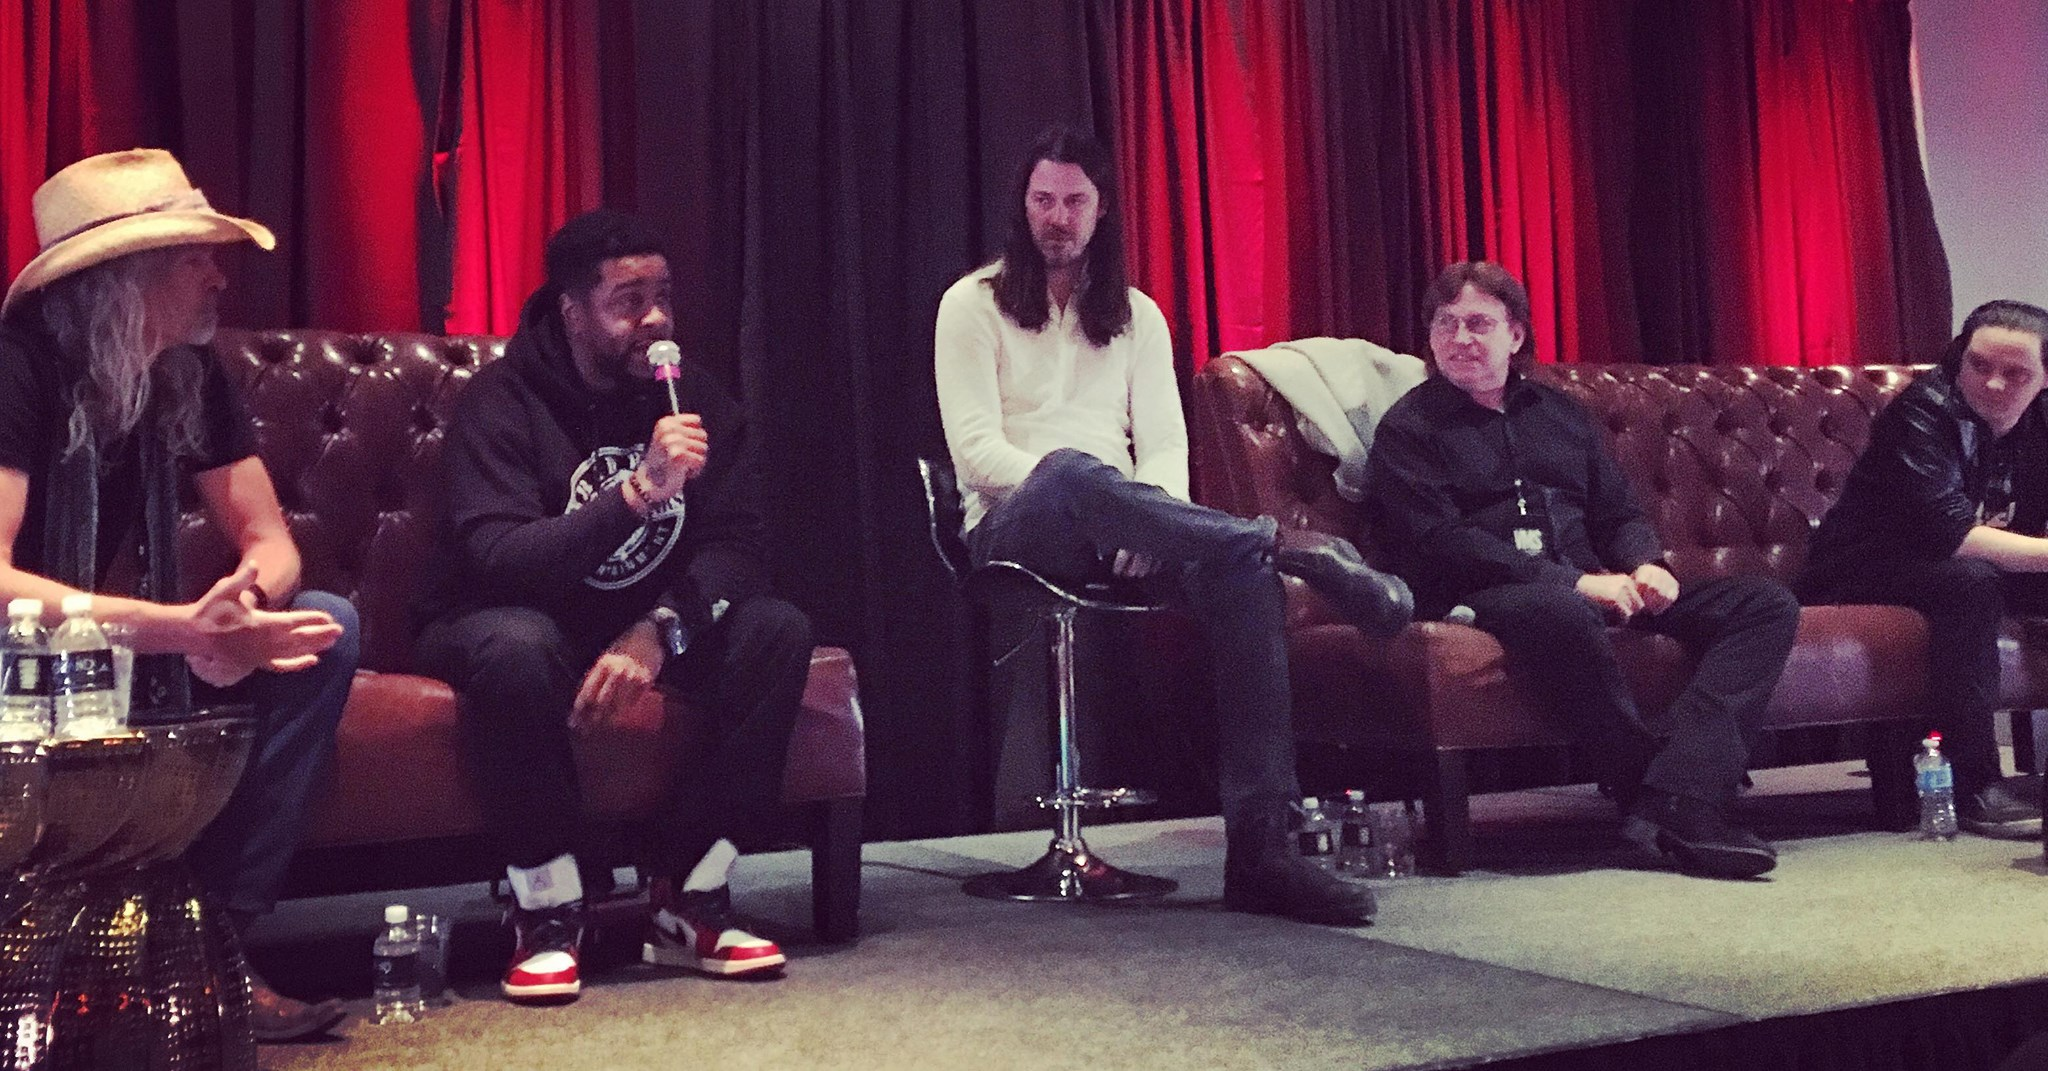 Producer Panel at Vegas Music Summit